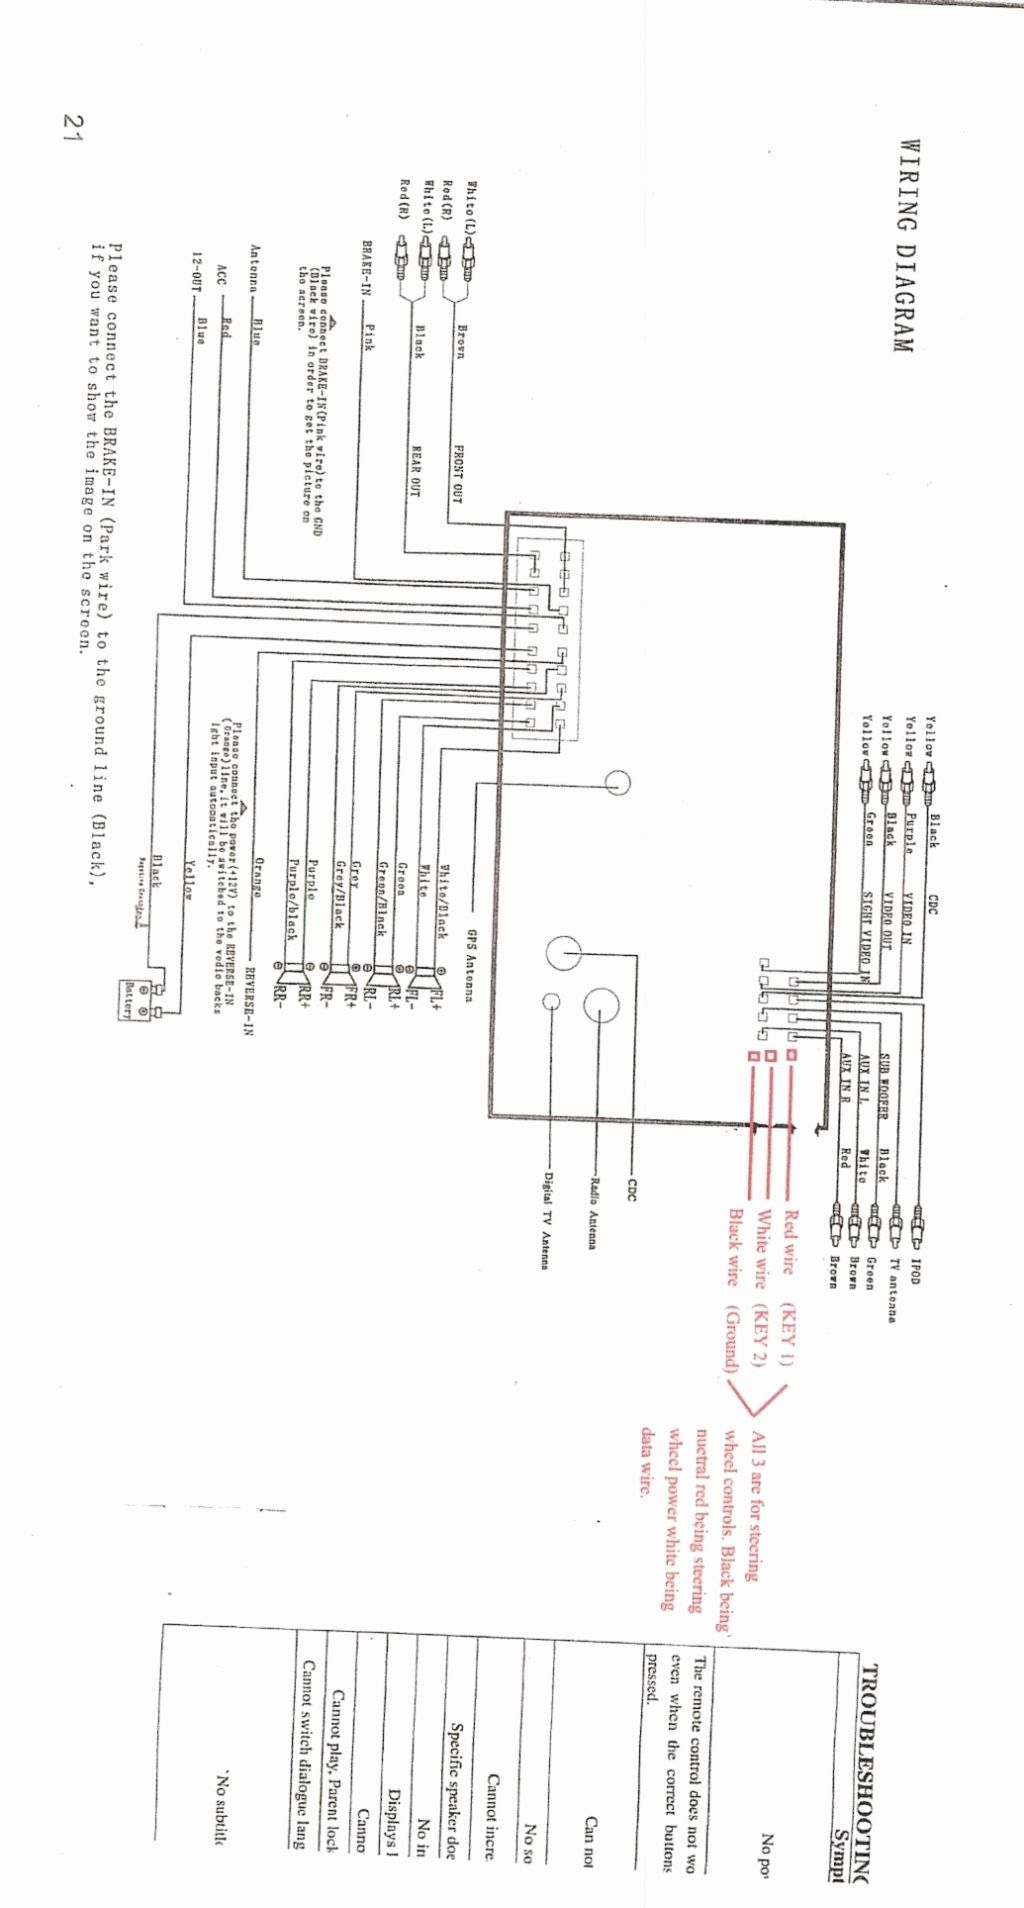 White Rodgers 24a01g 3 Wiring Diagram Collection Wire Axxess Steering Wheel Control Interface Download